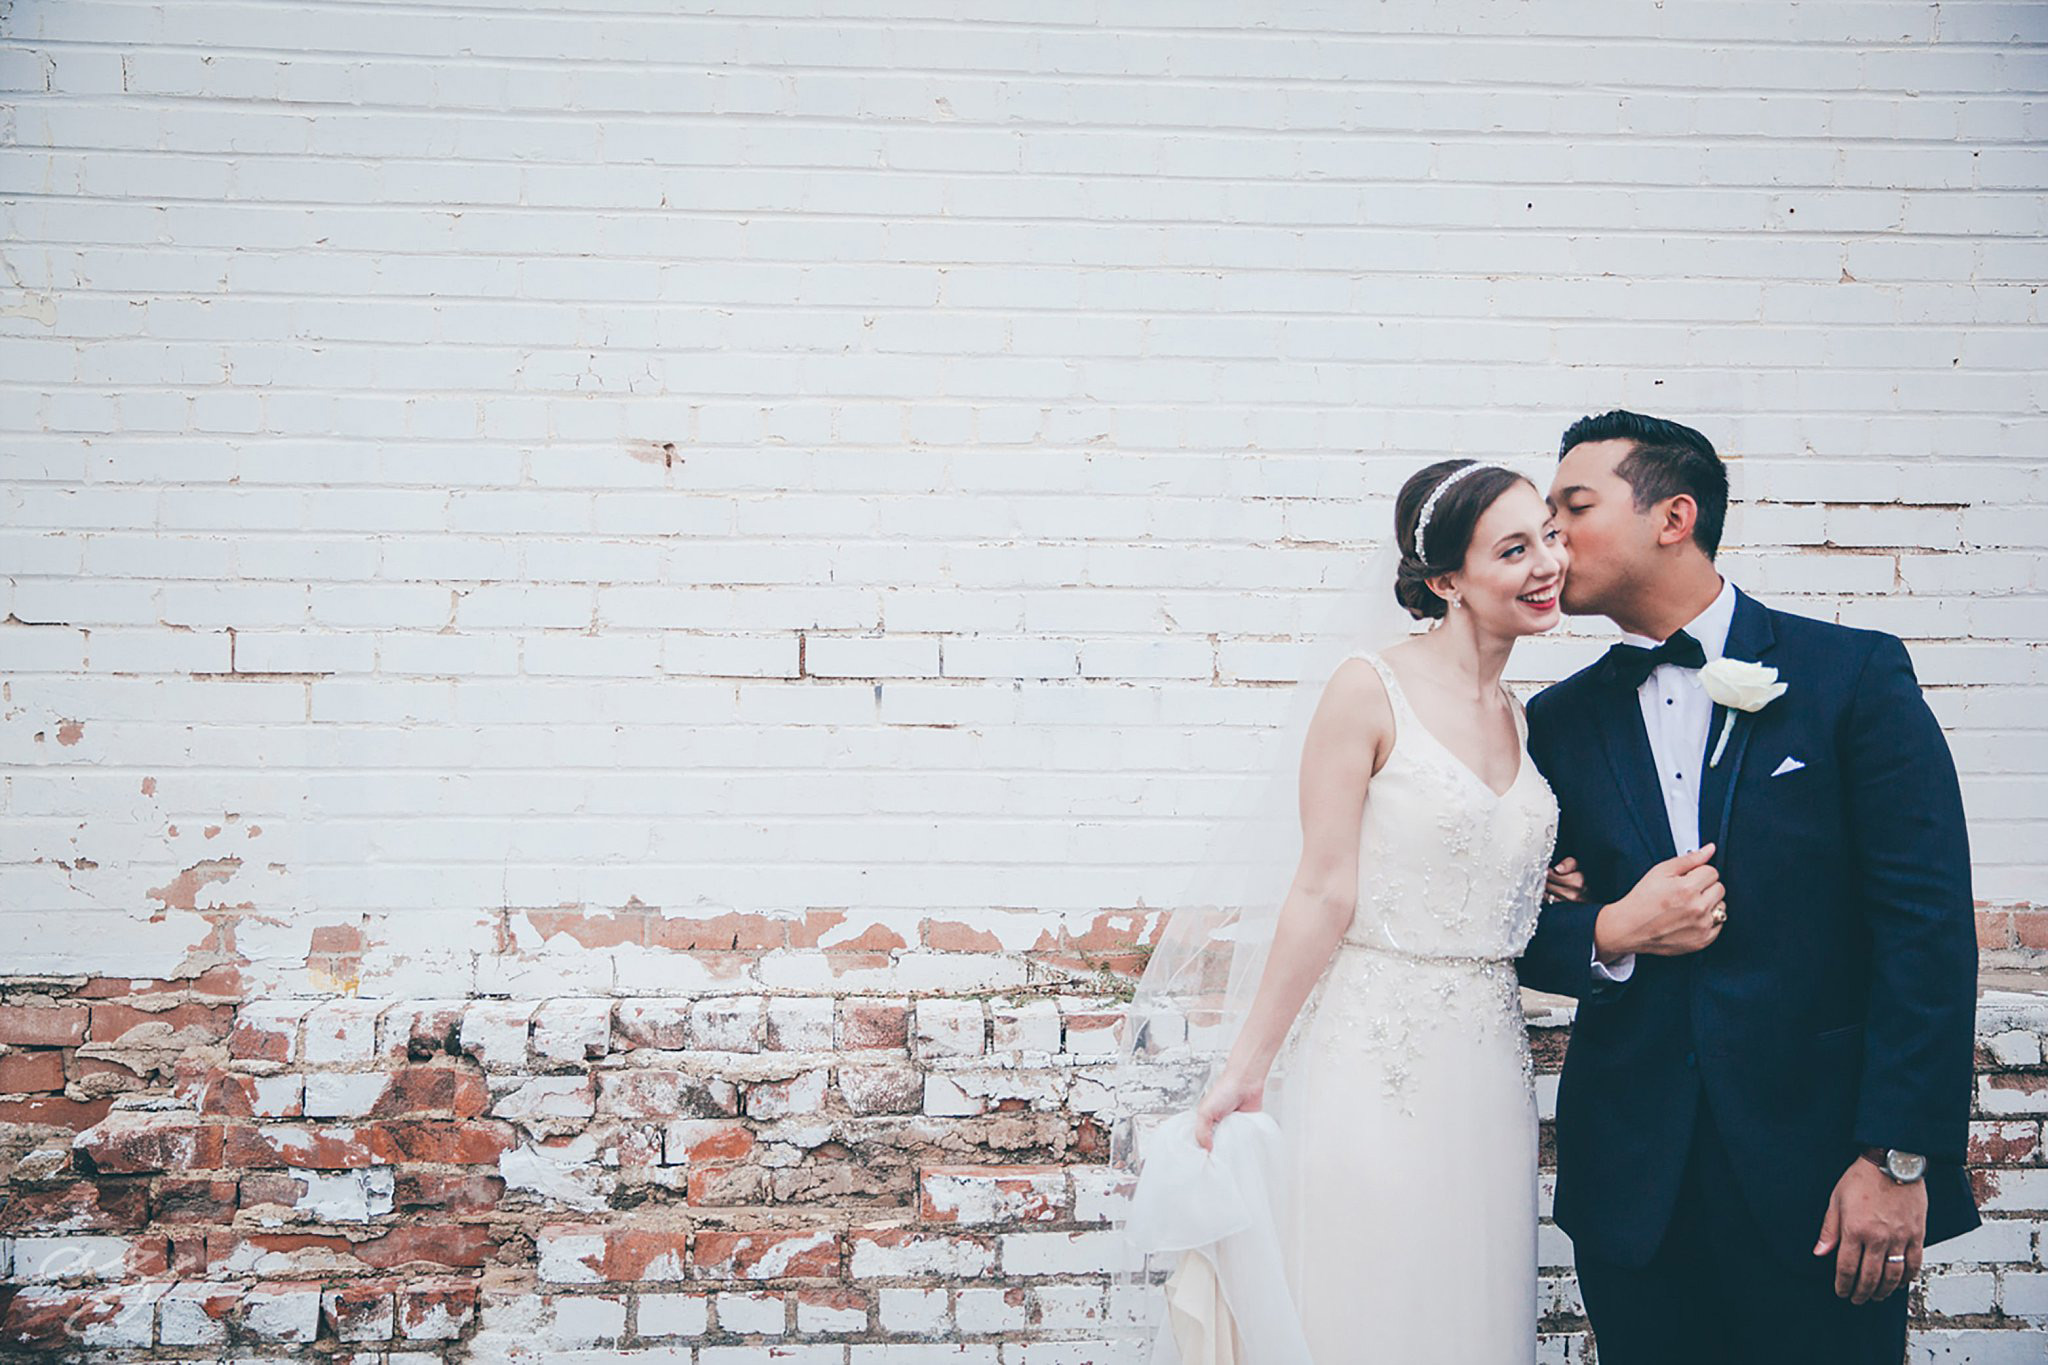 Bride and groom kissing again a whitewashed brick wall